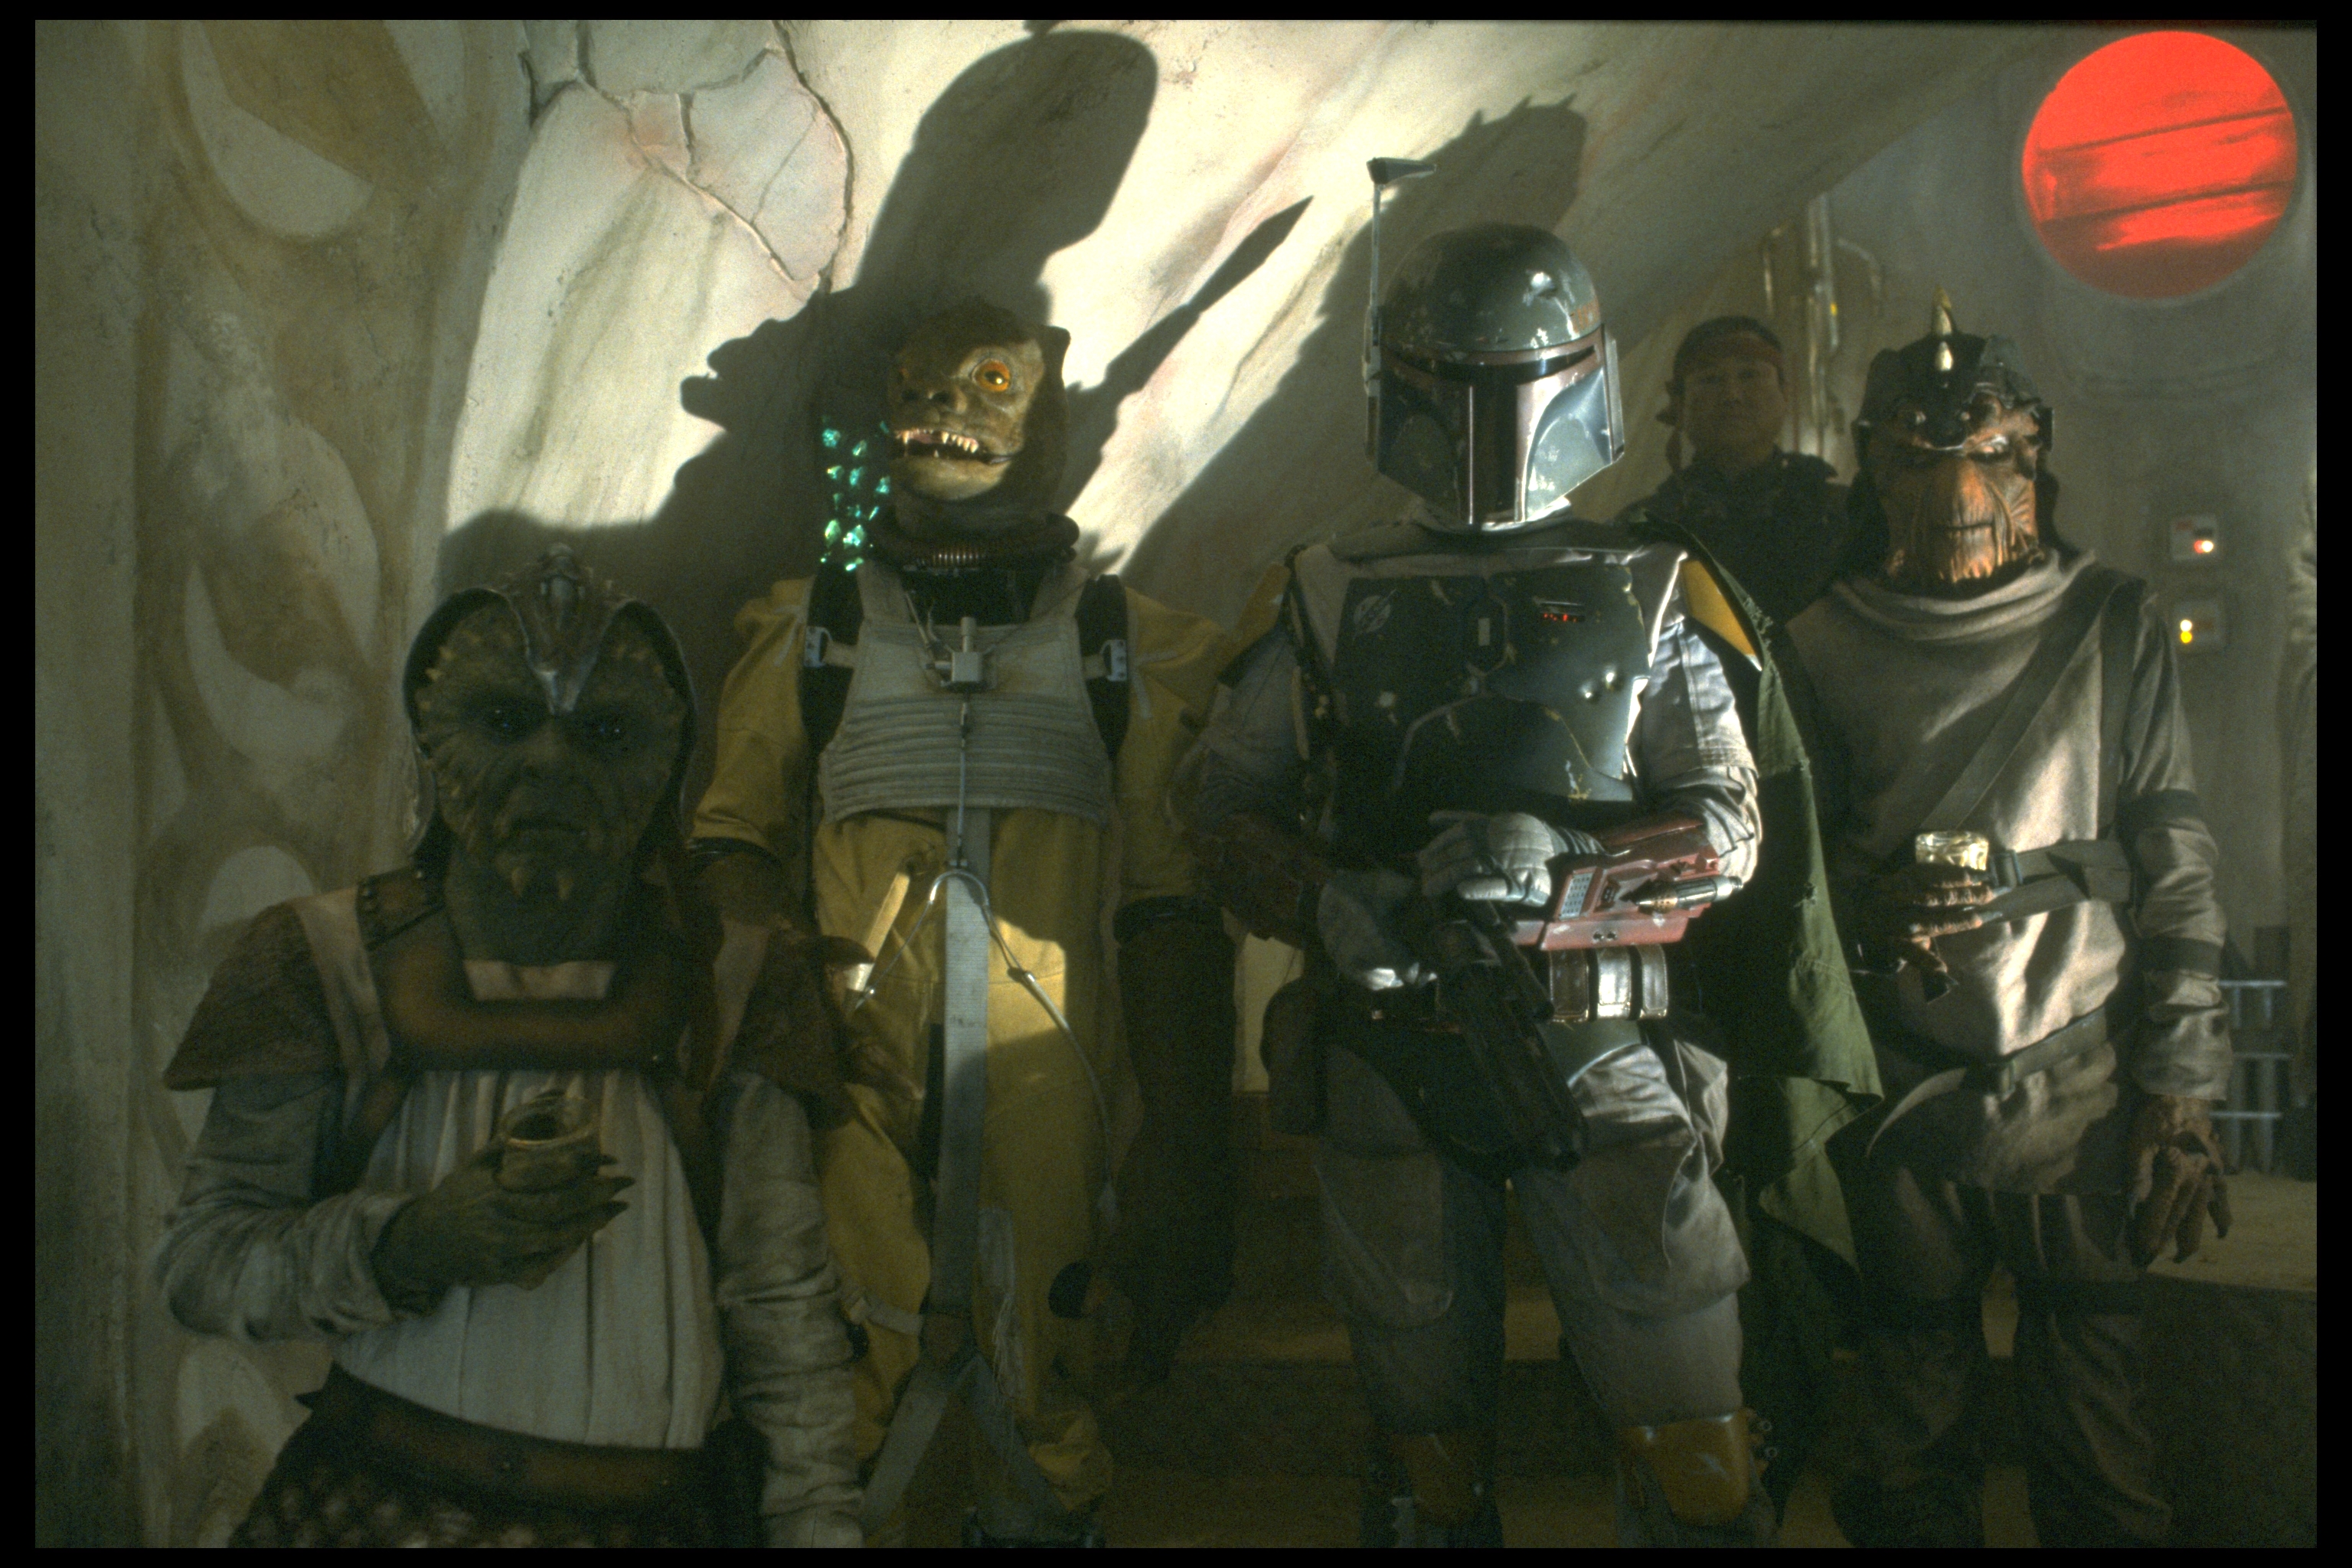 boba-fett-in-jabbas-palace-with-other-bo